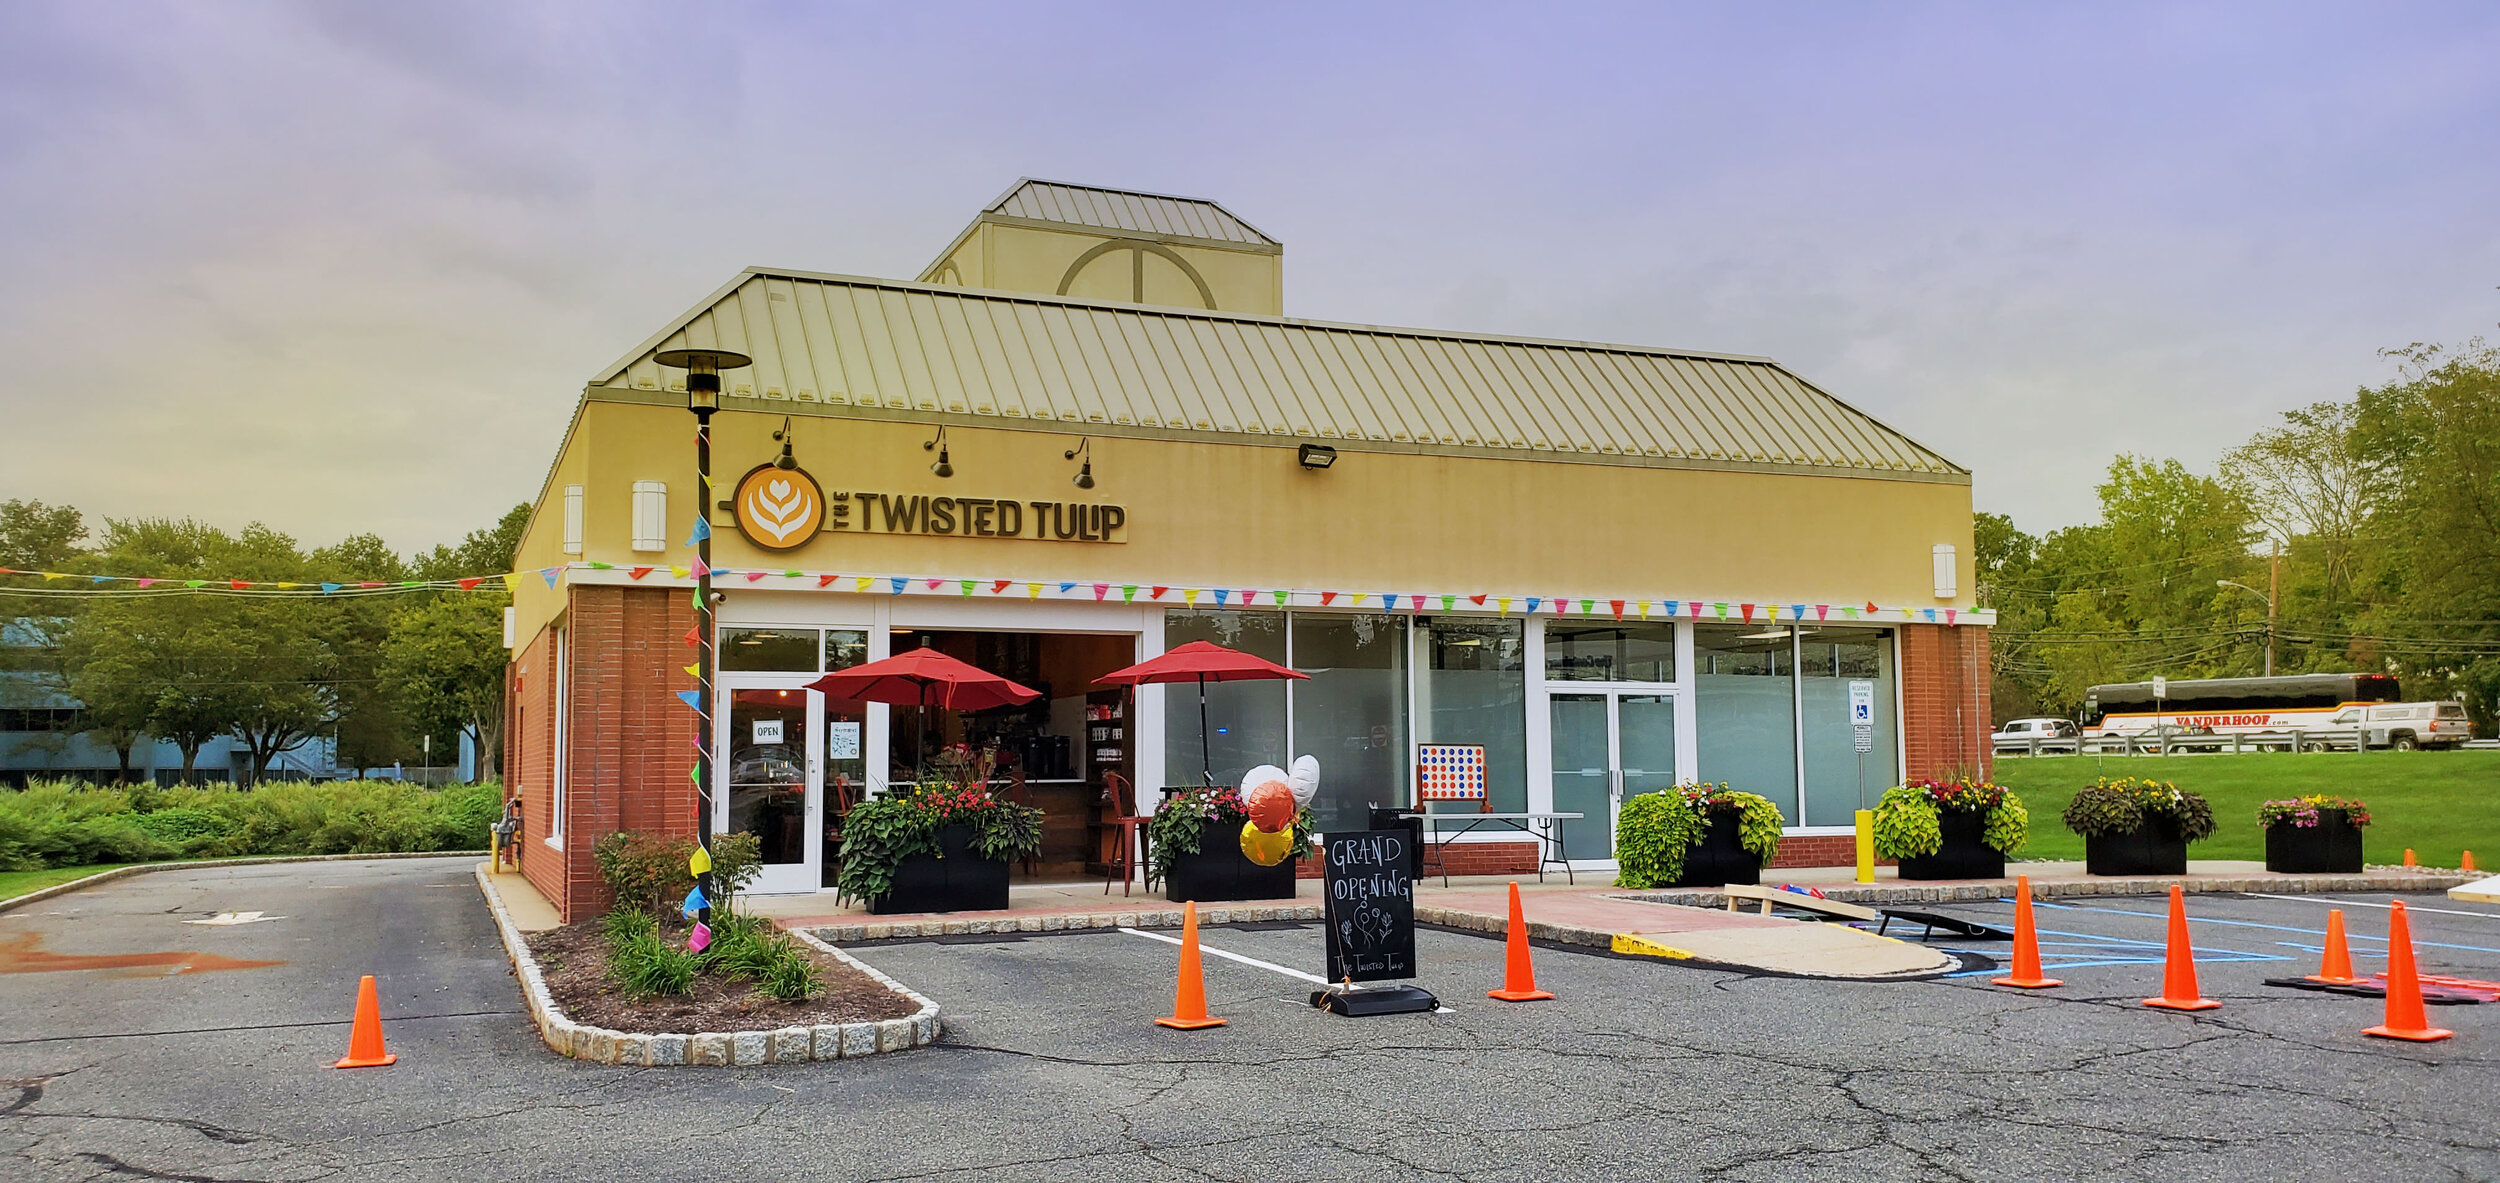 The Twisted Tulip#livingstonnj - The Twisted Tulip is a one of a kind coffee shop with so many kinds of snacks, teas, and some of the most incredible coffee you will find in New Jersey. Essex County and Livingston, NJ has truly stumbled across an incredible gem.